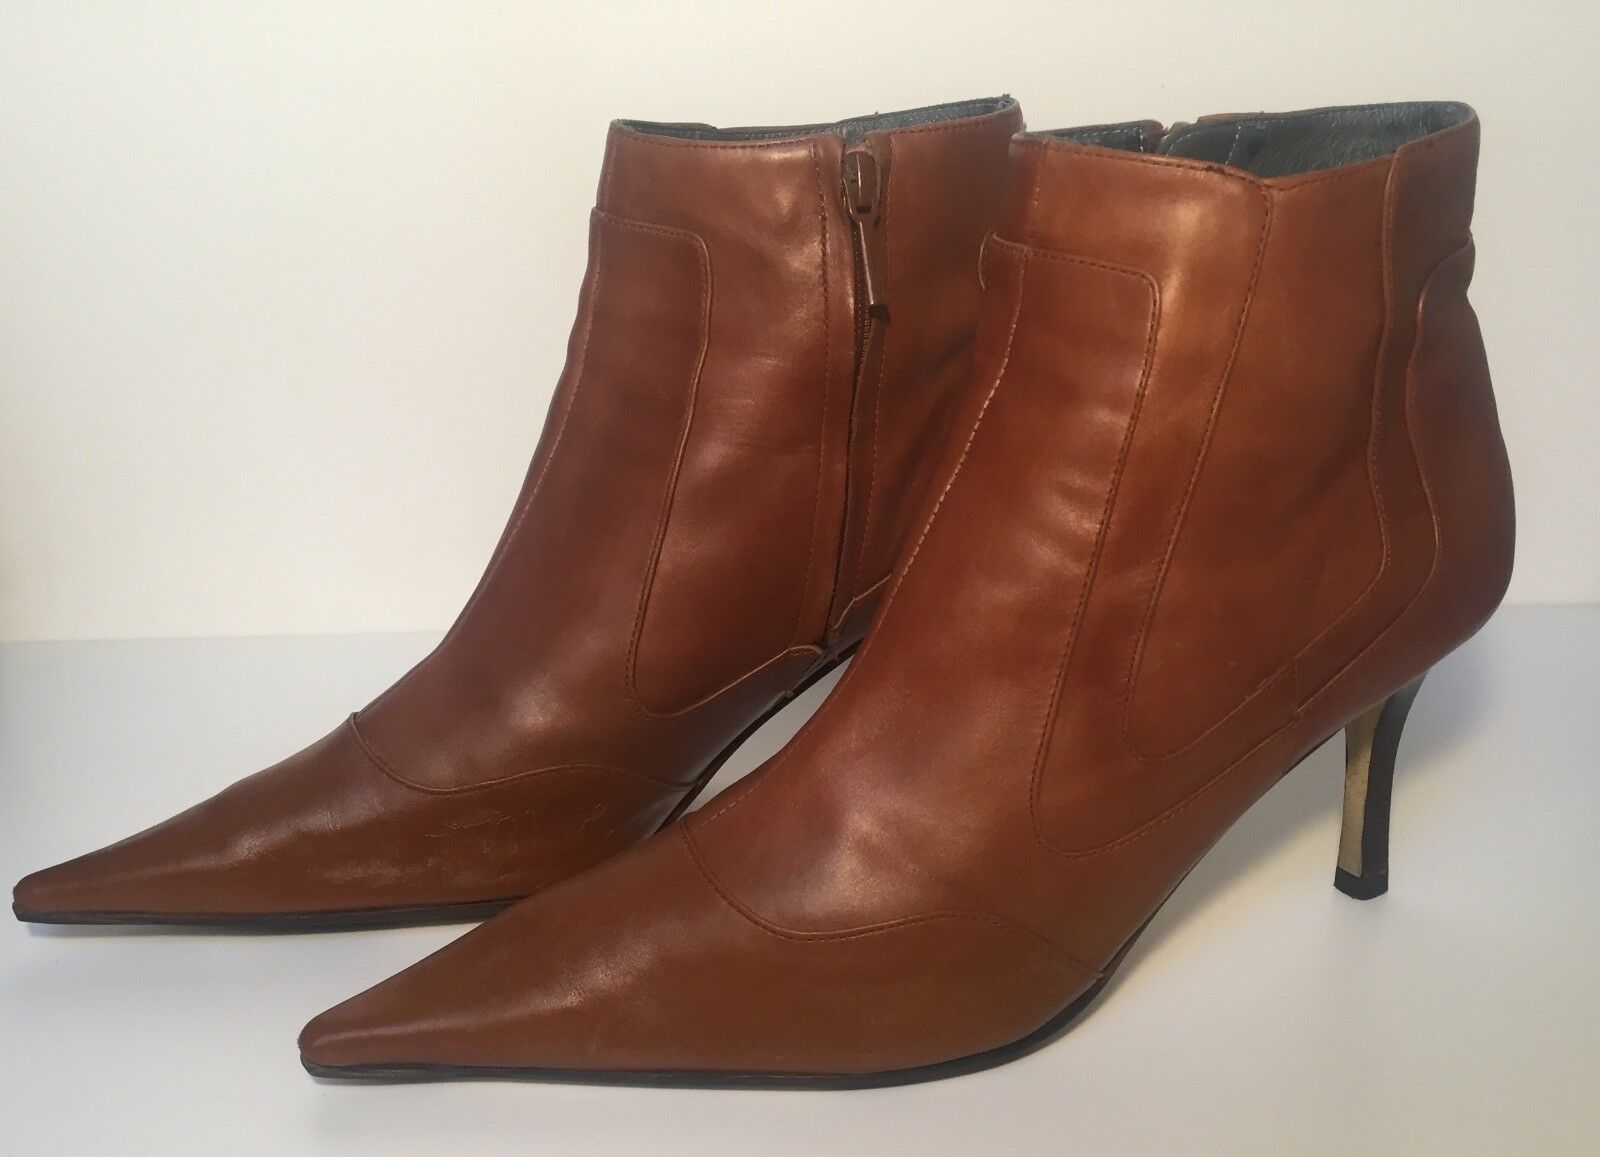 Zara Caramel Leather Booties Size 41(US 10)